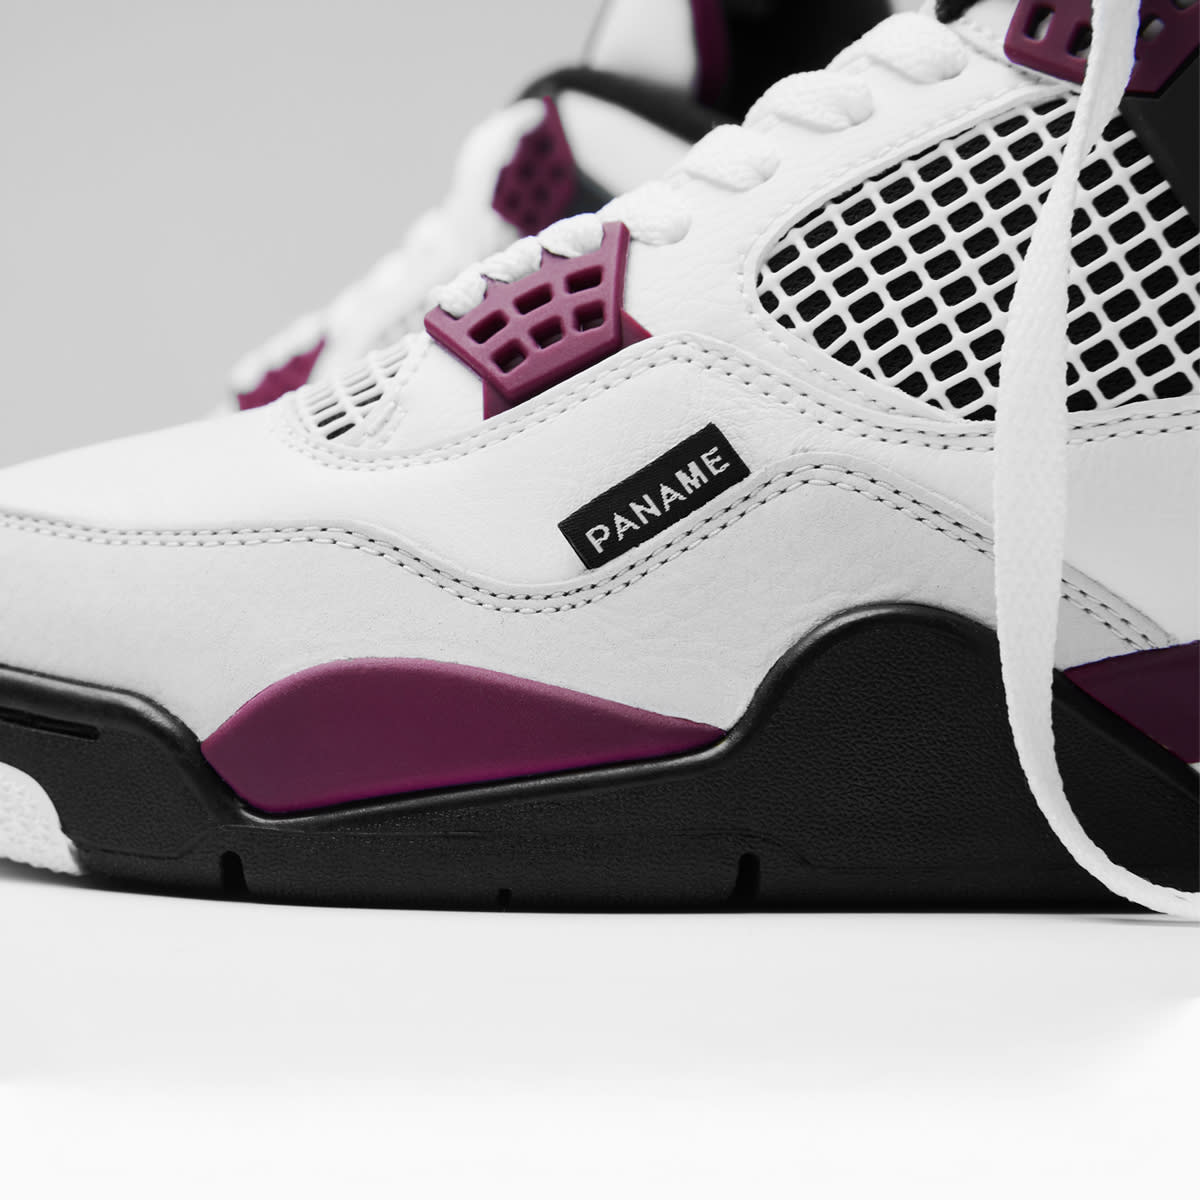 End Features Nike Air Jordan 4 Retro Psg Register Now On End Launches